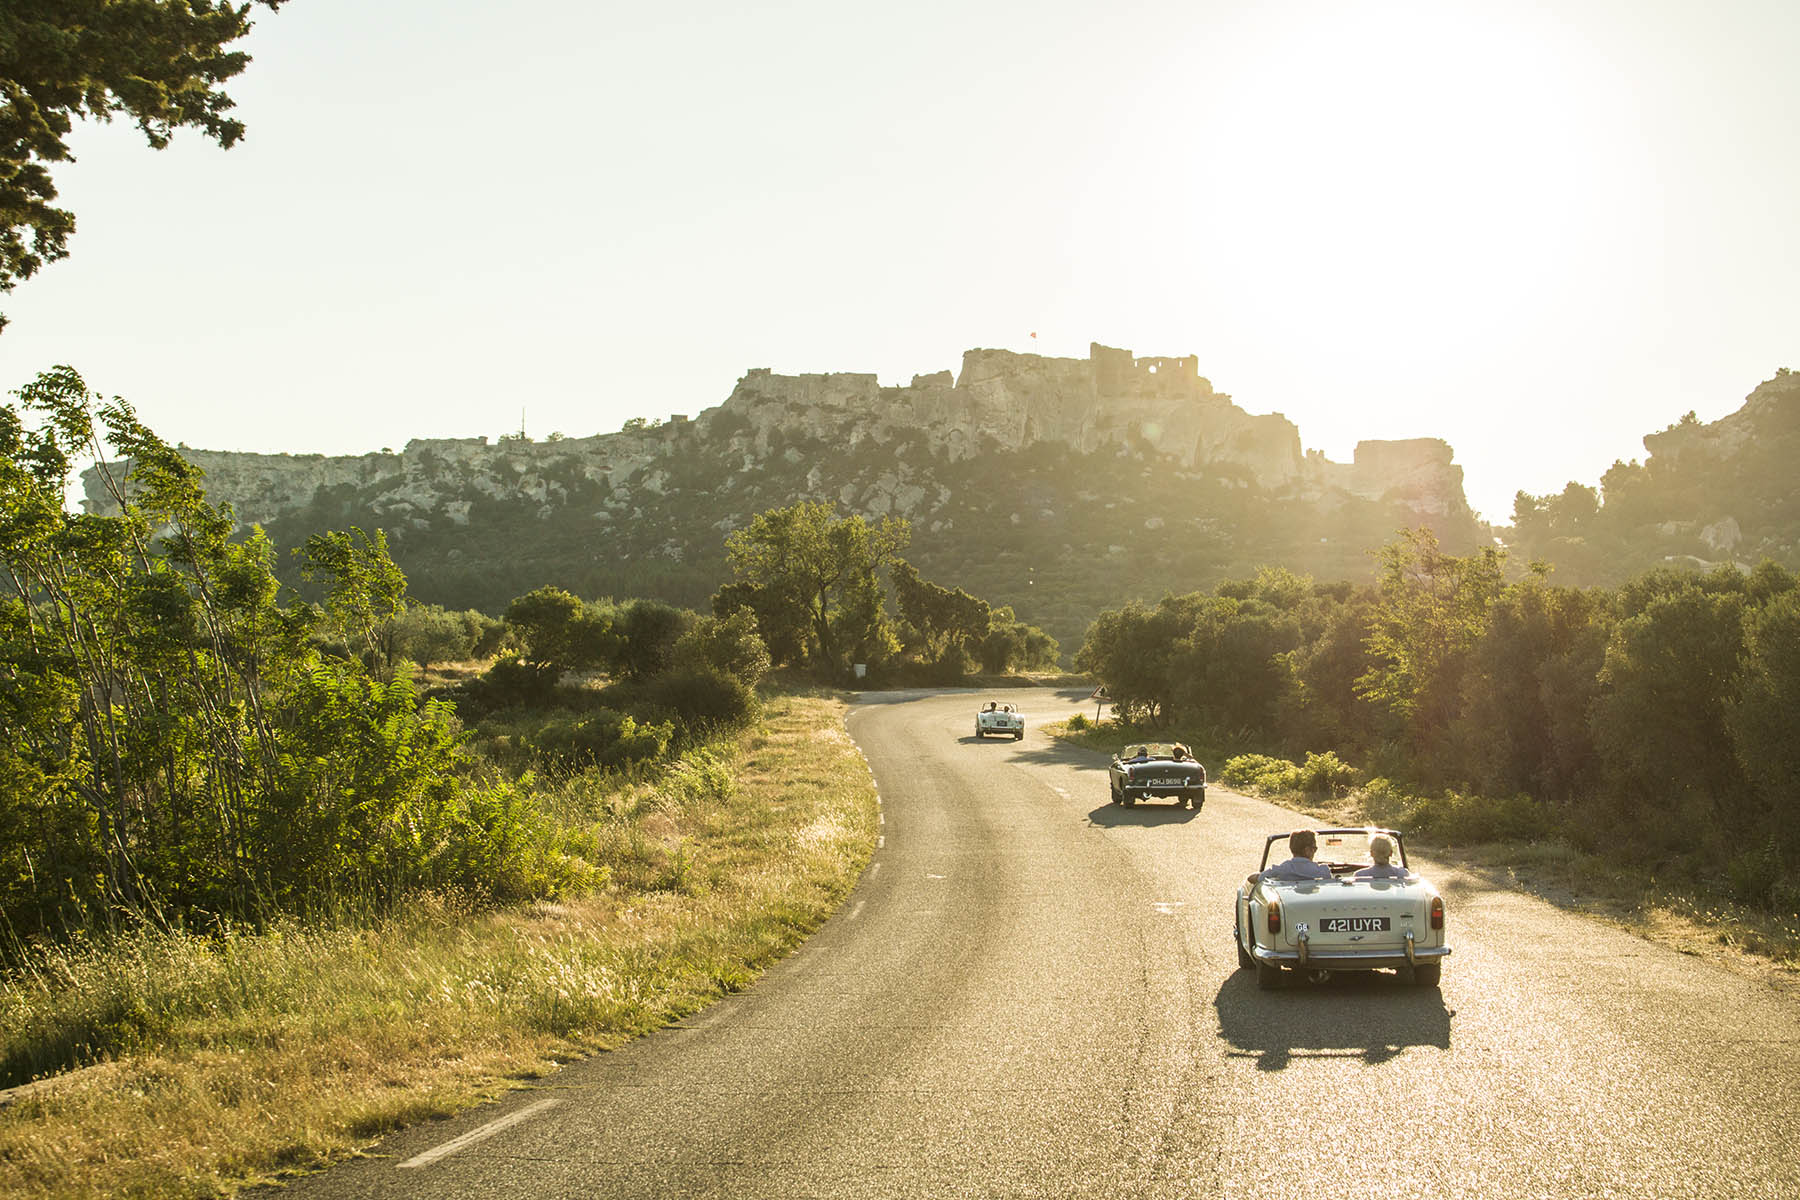 A photograph of a rally experience taken by the Provence Classics team.